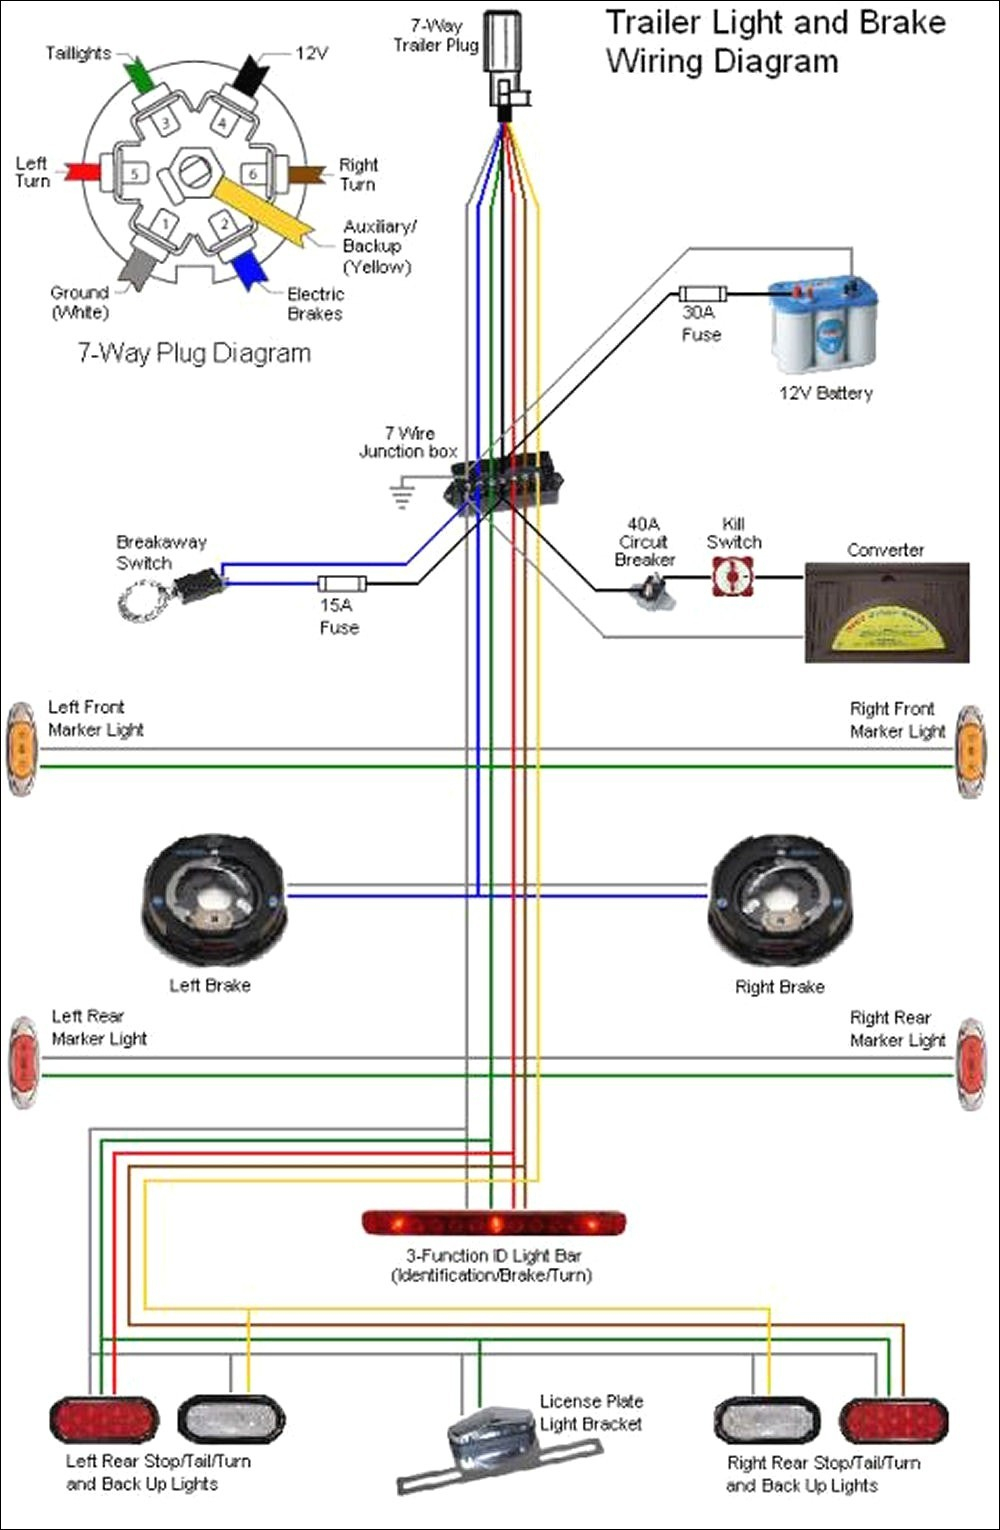 Break Away Wiring Diagram - Wiring Diagram Data Oreo - Hopkins Trailer Plug Wiring Diagram